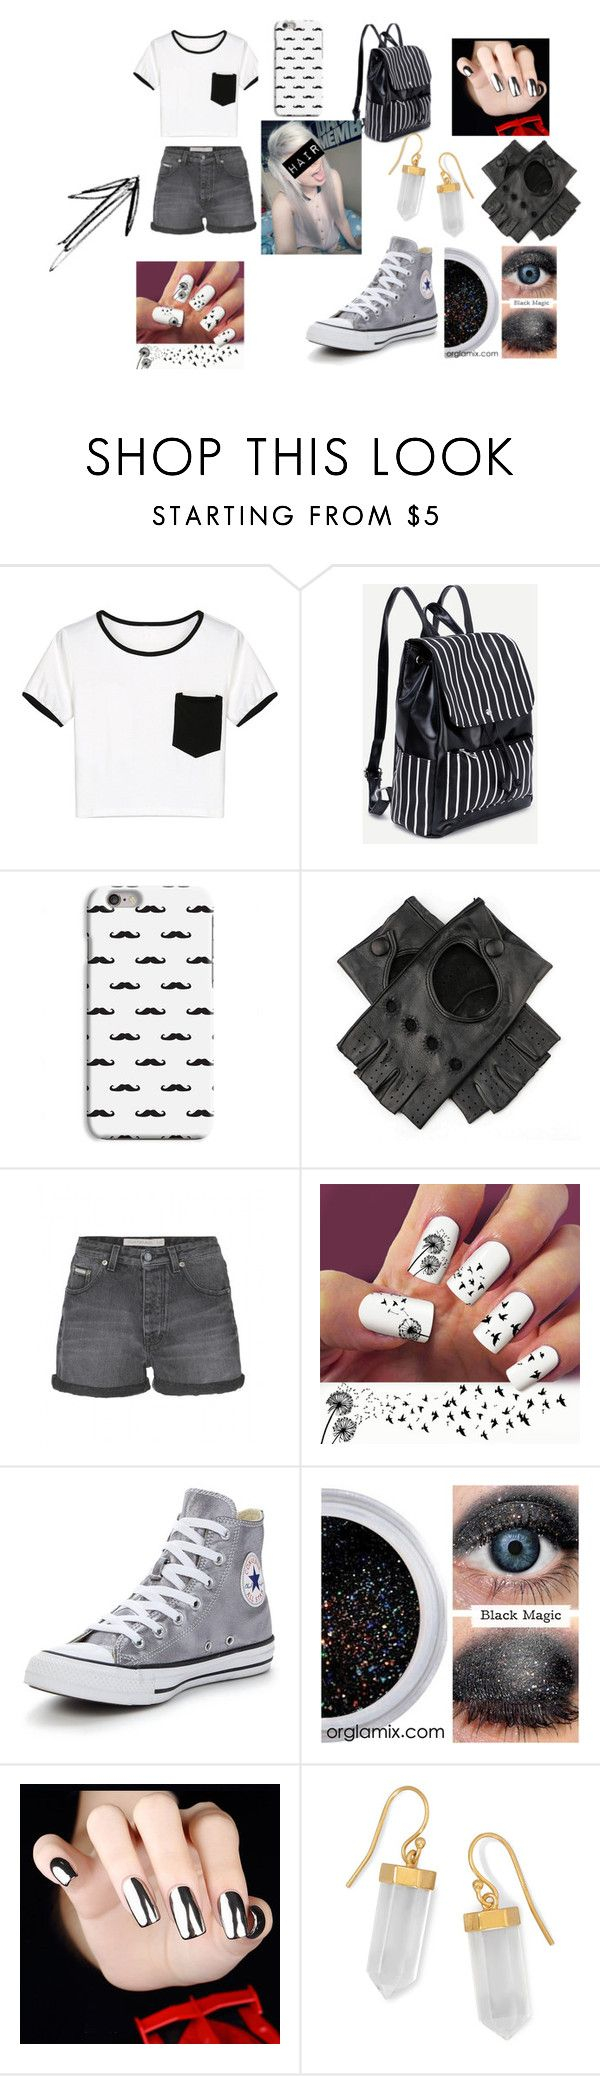 Emo- White and gray by whitenoiseiswatching on Polyvore featuring WithChic, Calvin Klein Jeans, Converse, BillyTheTree and Black